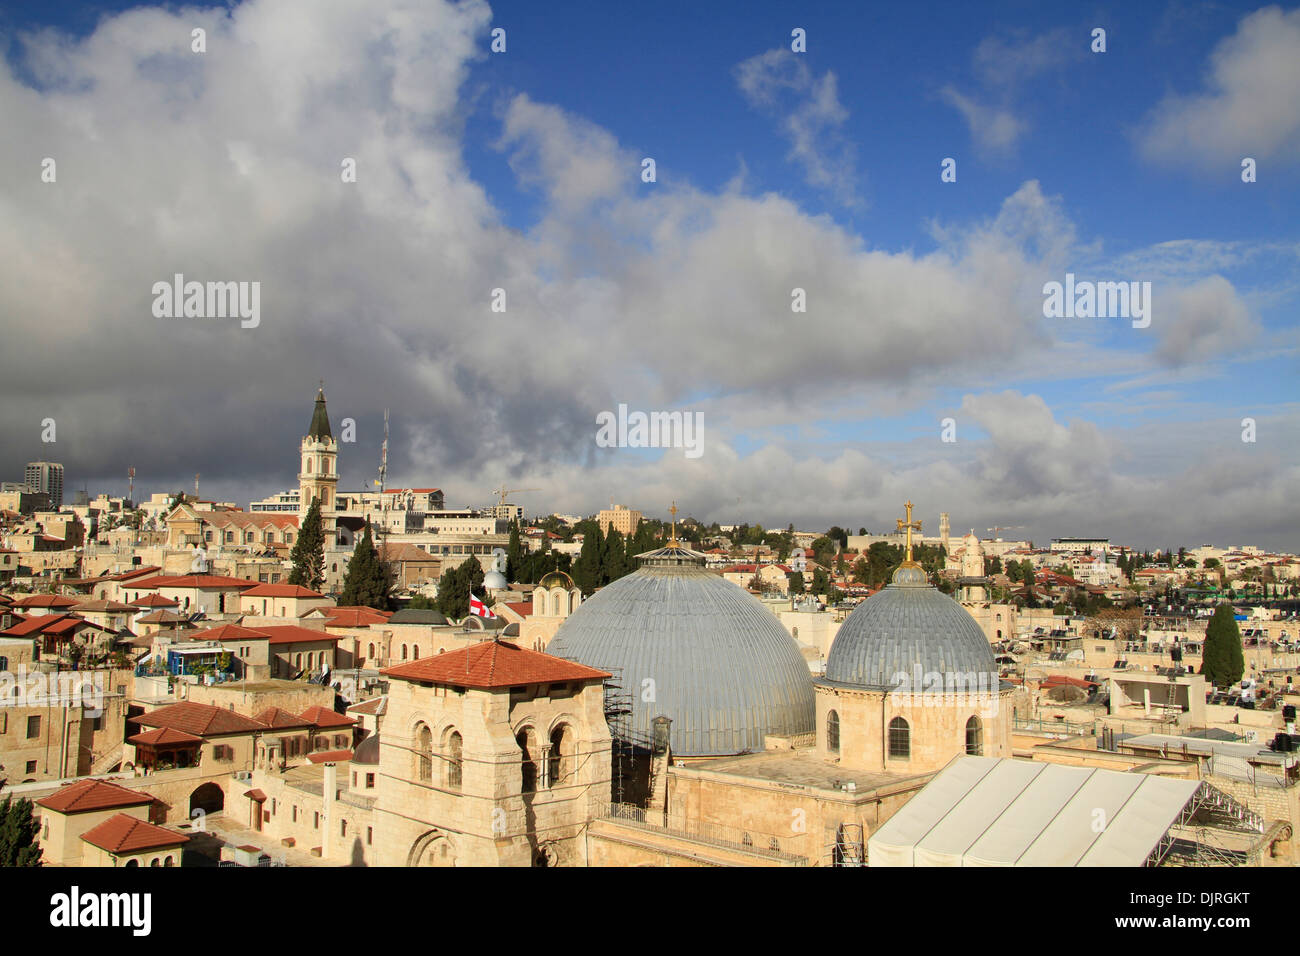 Israel, Jerusalem Old City, a view of the Church of the Holy Sepulchre from the bell tower of the Church of the Redeemer - Stock Image